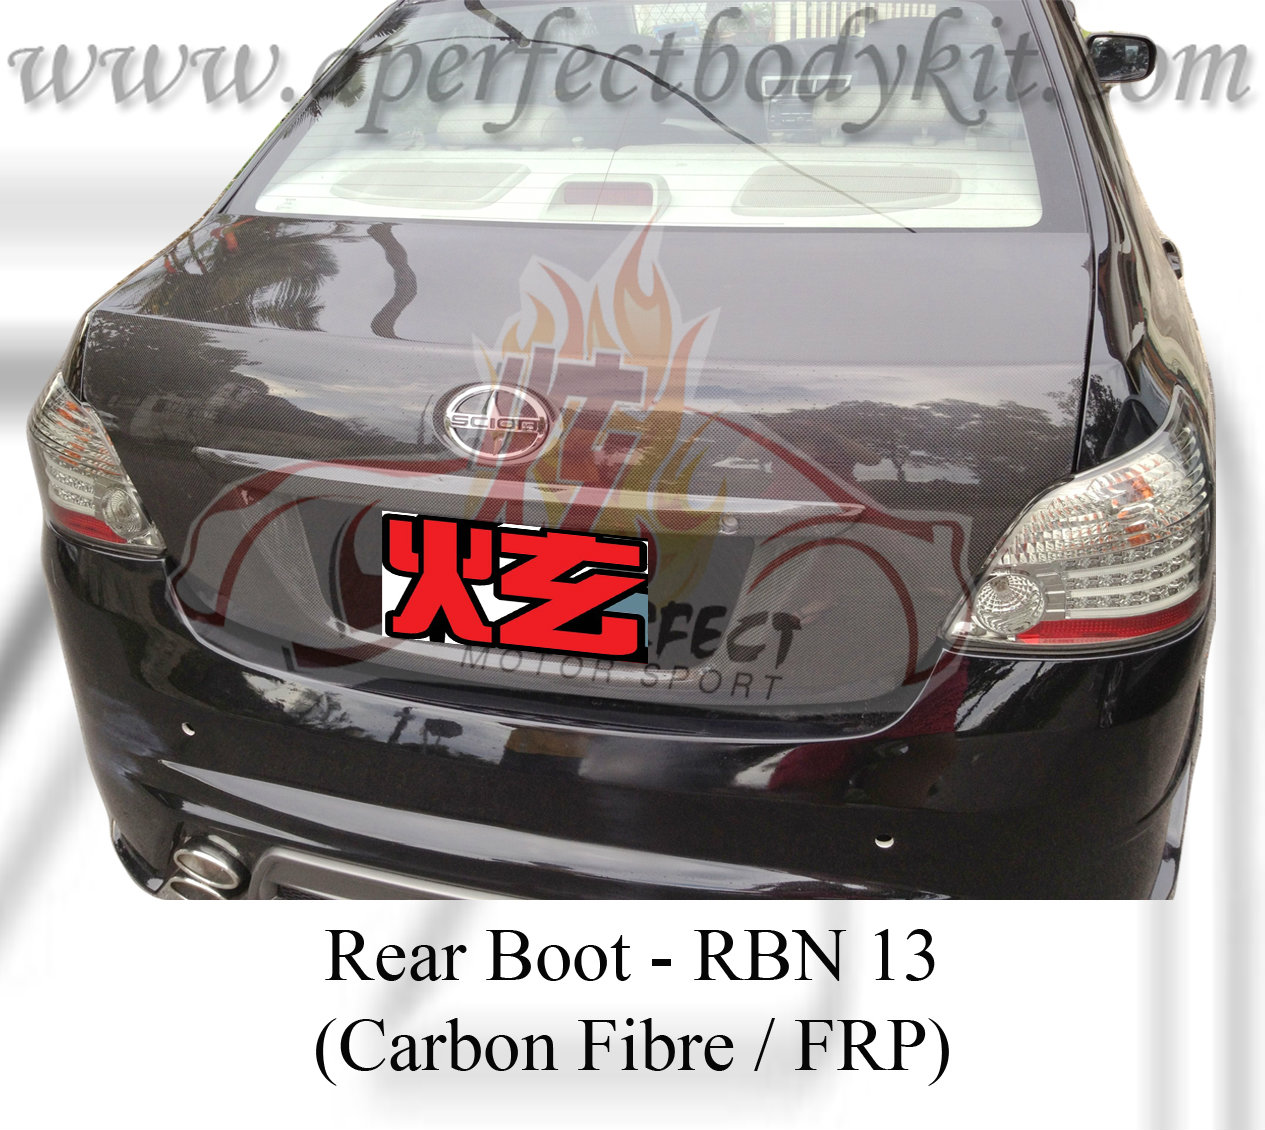 Toyota Vios 2008 Carbon Fibre Rear Boot